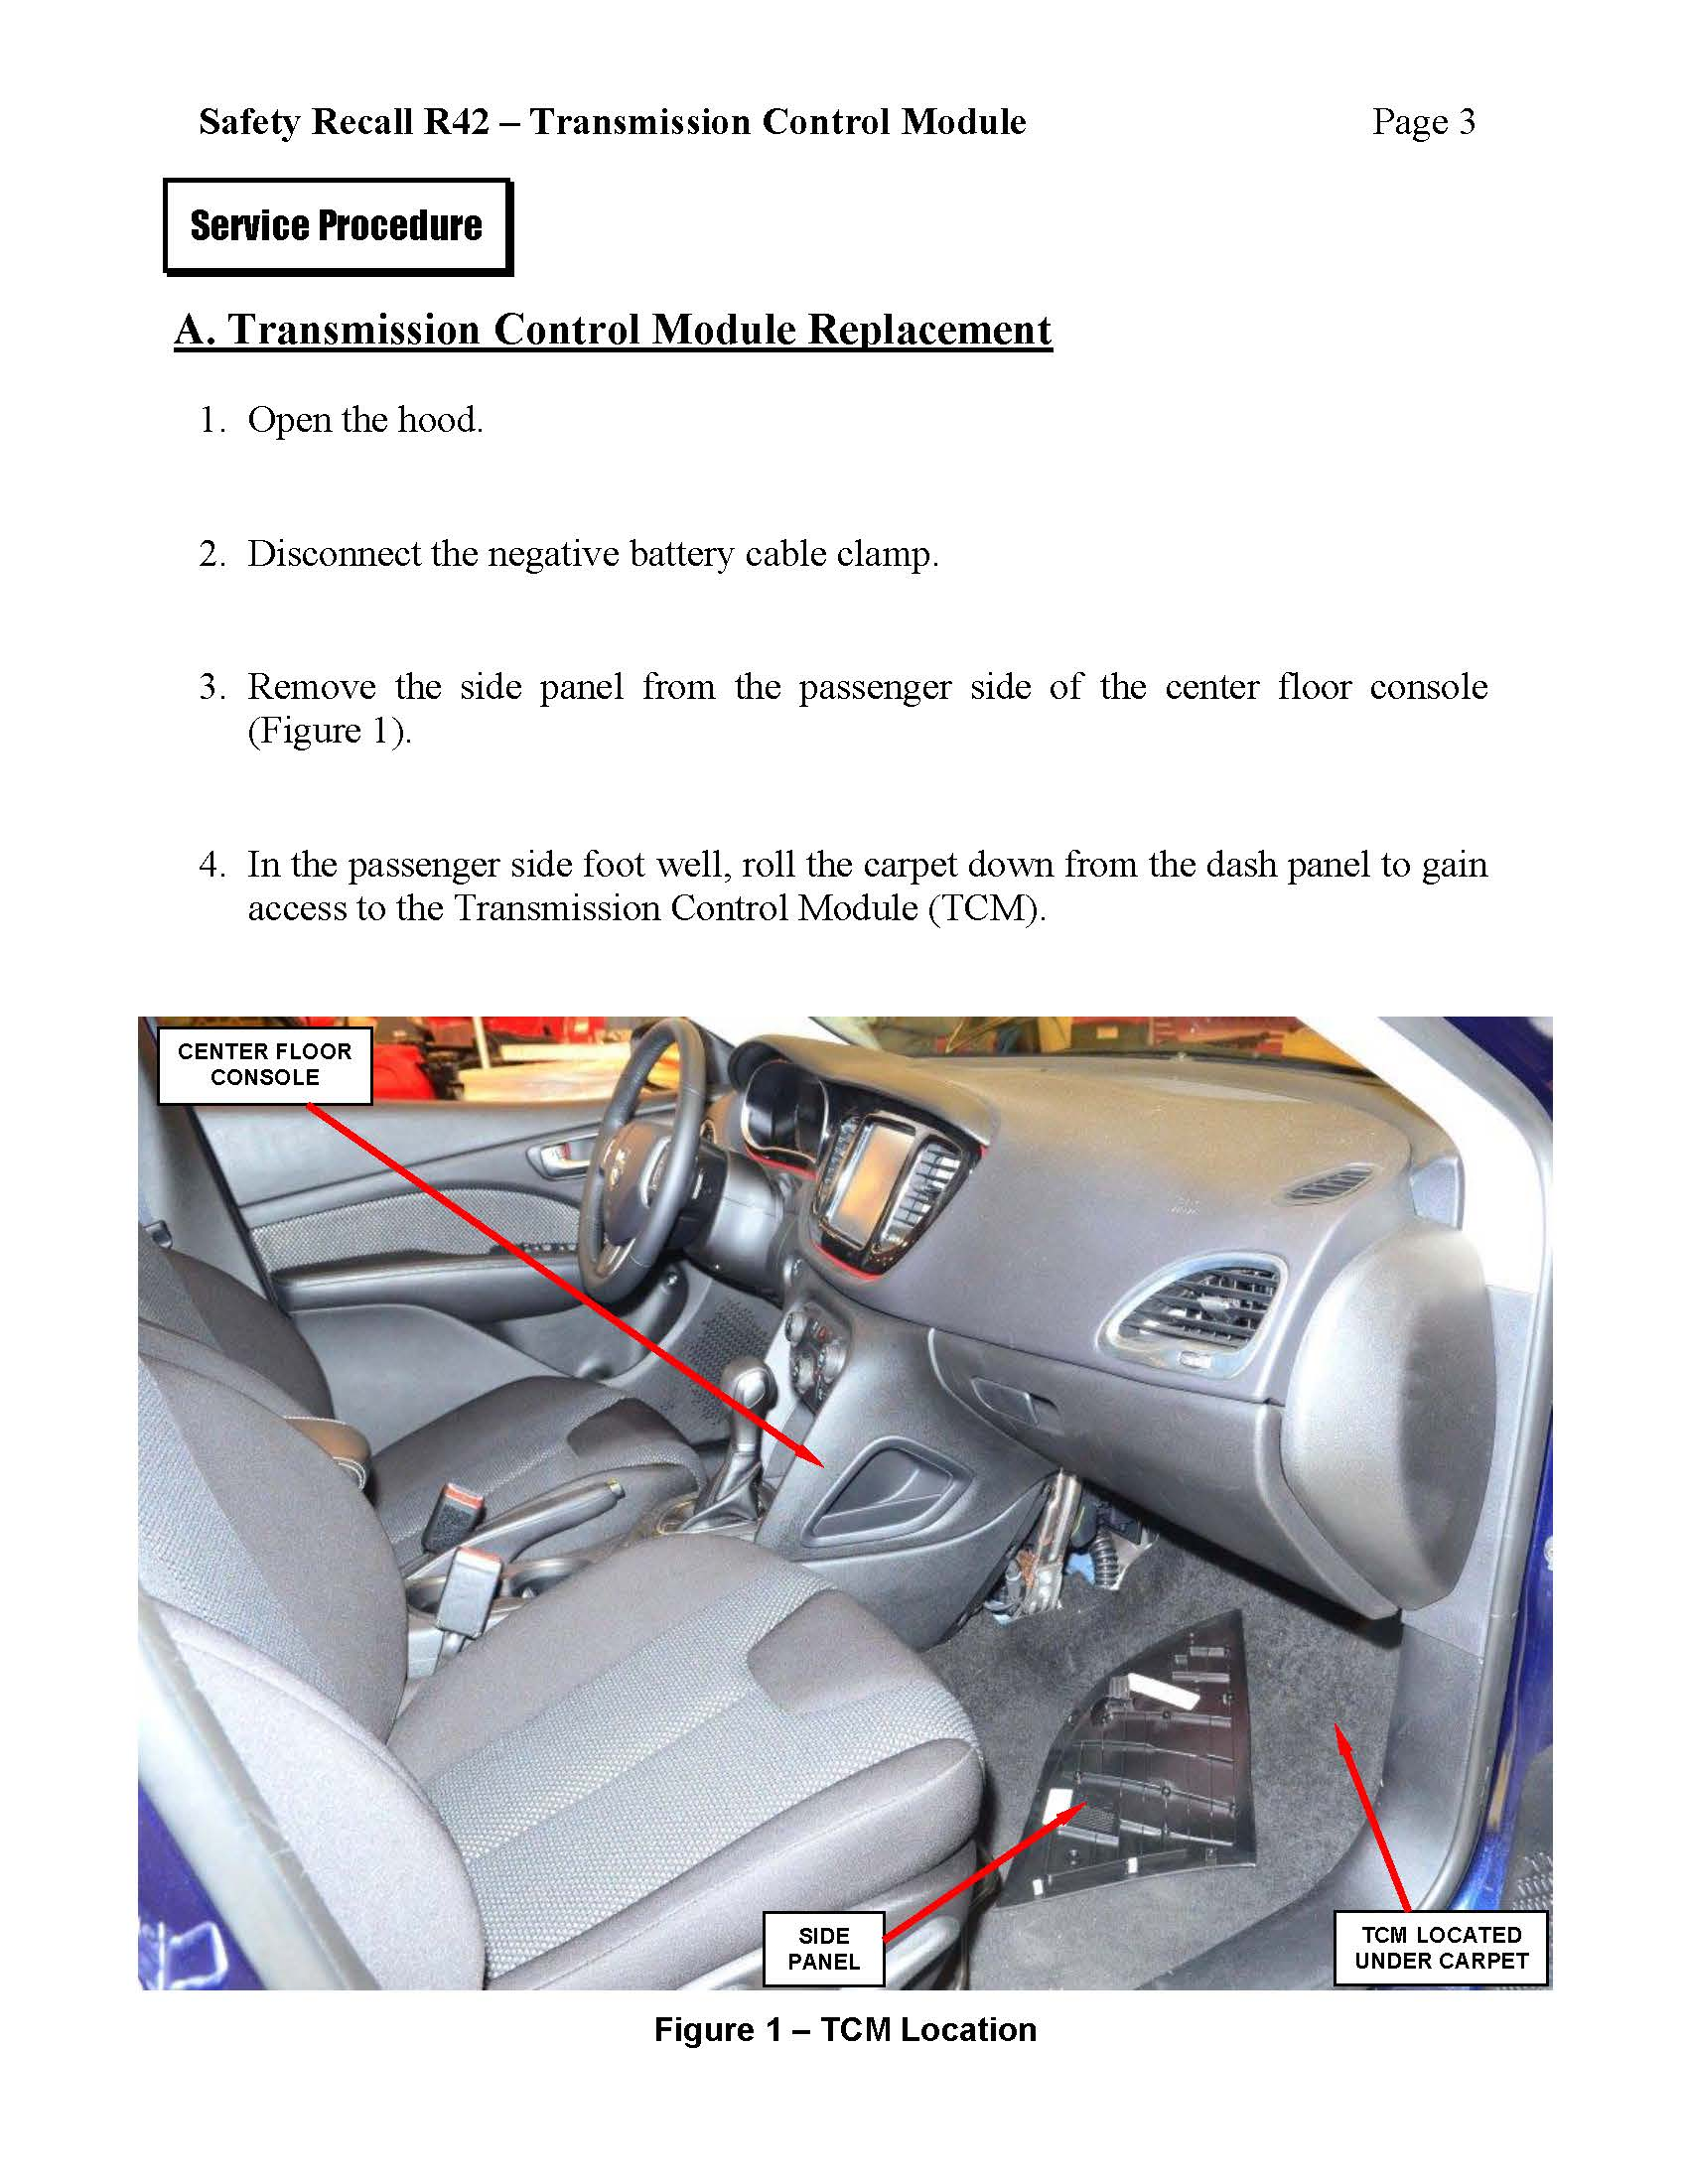 D Safety Recall R Nhtsa V Transmission Control Module R Recall Page on Engine Control Module Recall